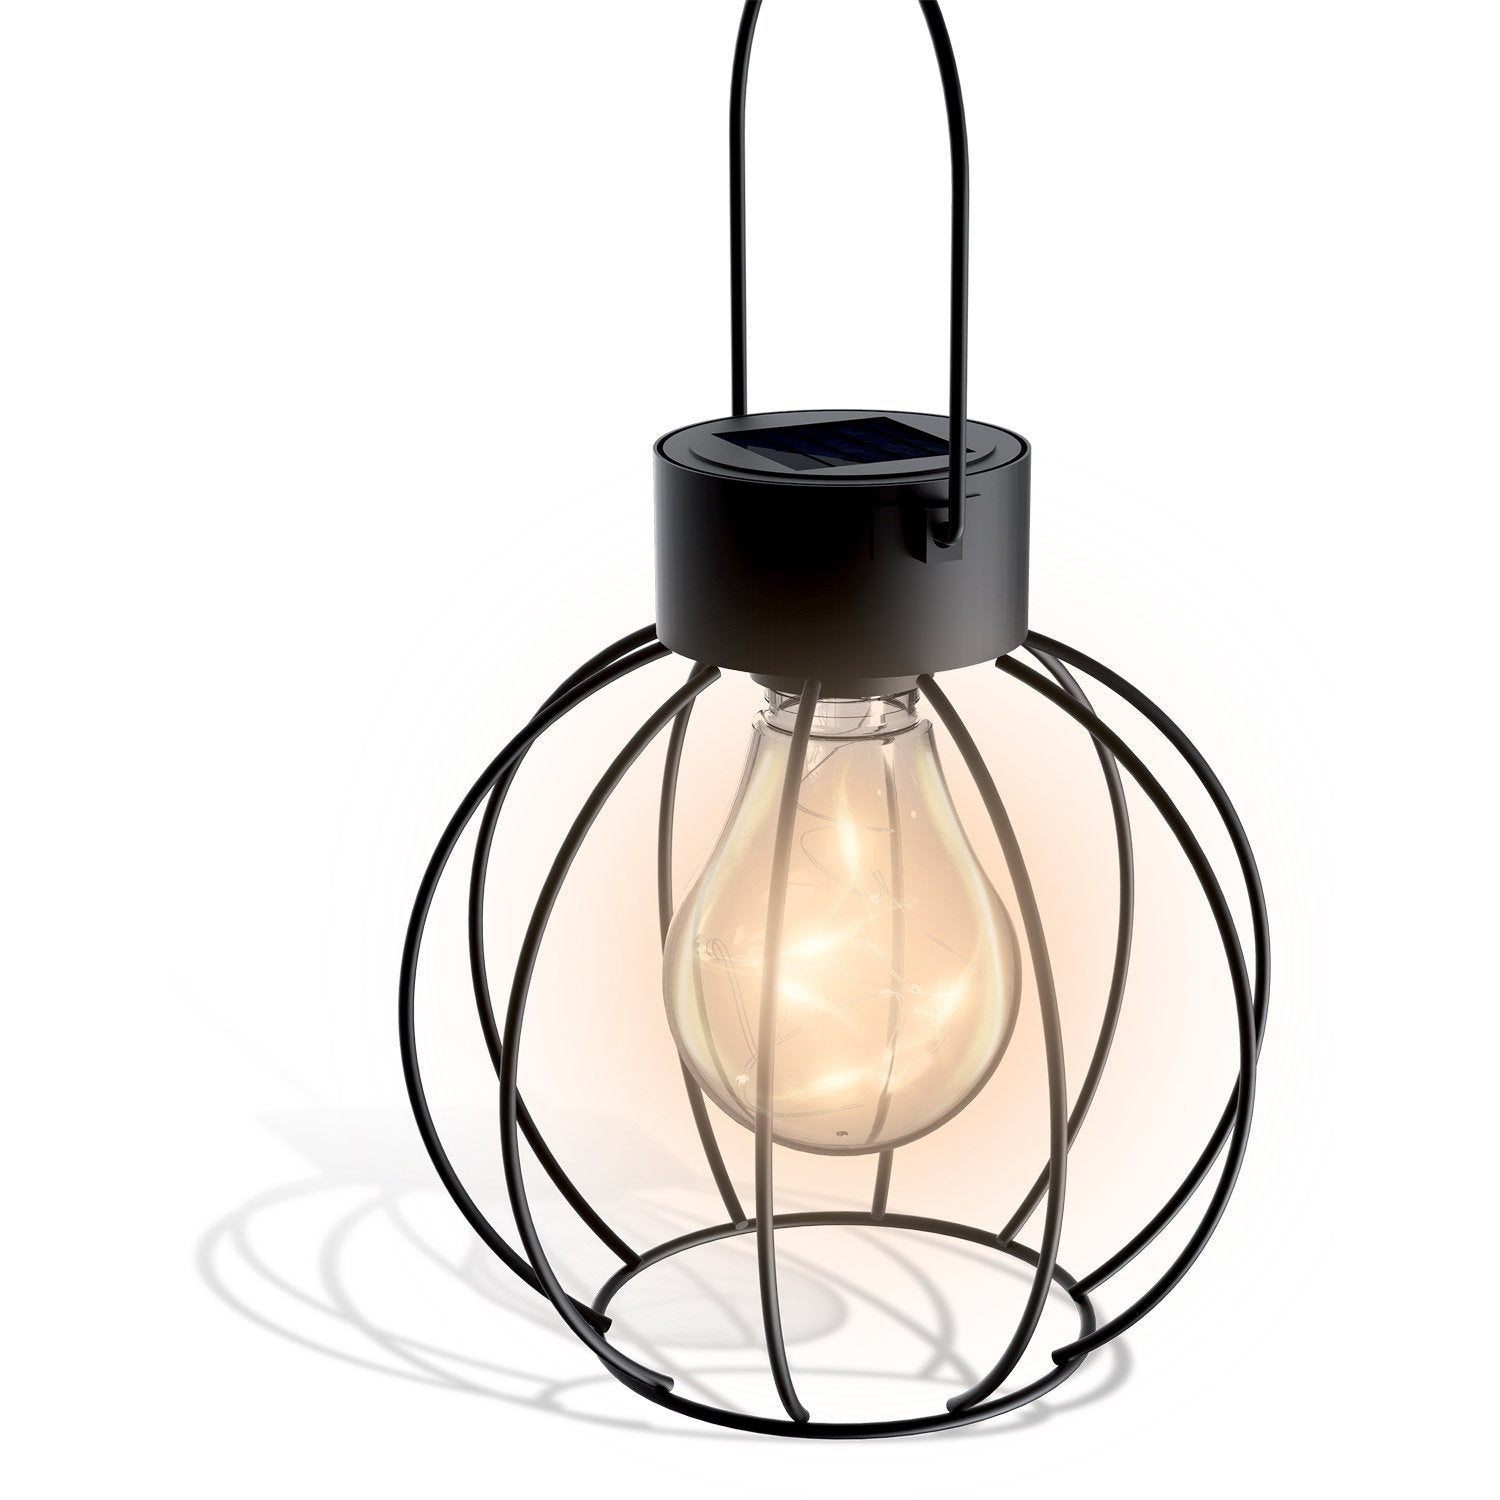 Beautiful lampe solaire jardin xanlite photos design - Lampe exterieur leroy merlin ...